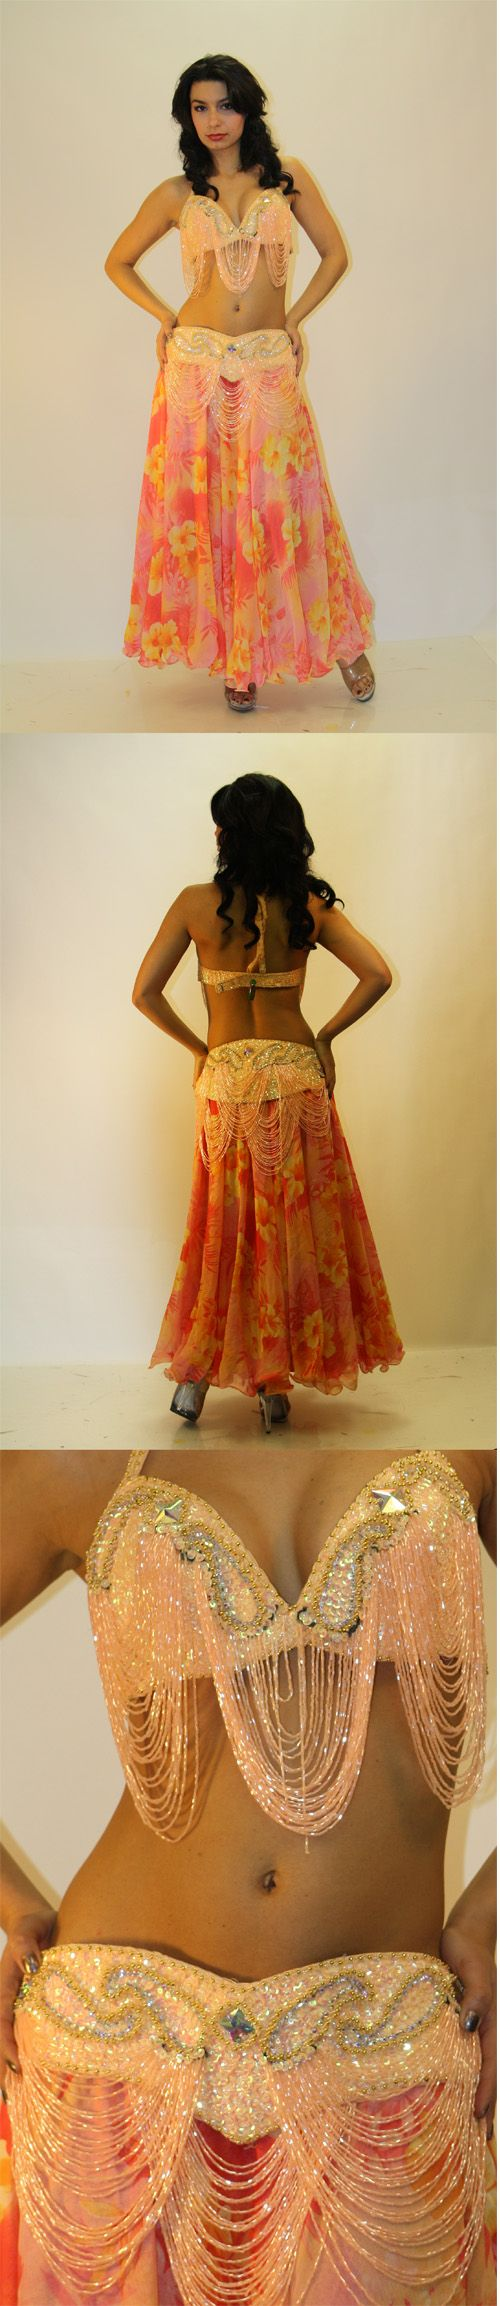 Full Belly Dance Costume: Peach and Floral